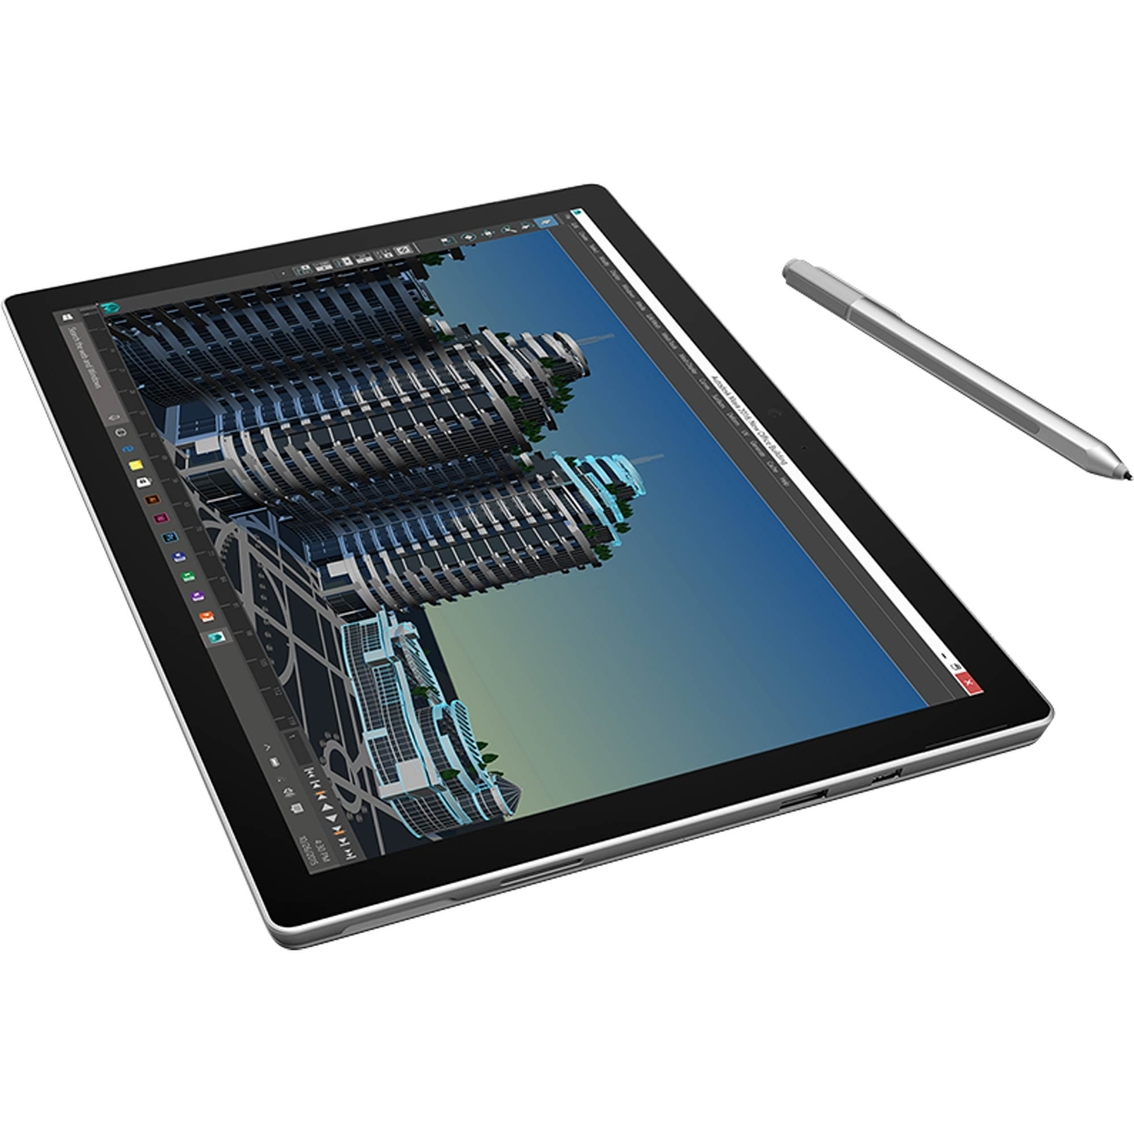 microsoft surface pro 4 12 3 in intel core m3 4gb 128gb windows 10 tablets electronics. Black Bedroom Furniture Sets. Home Design Ideas